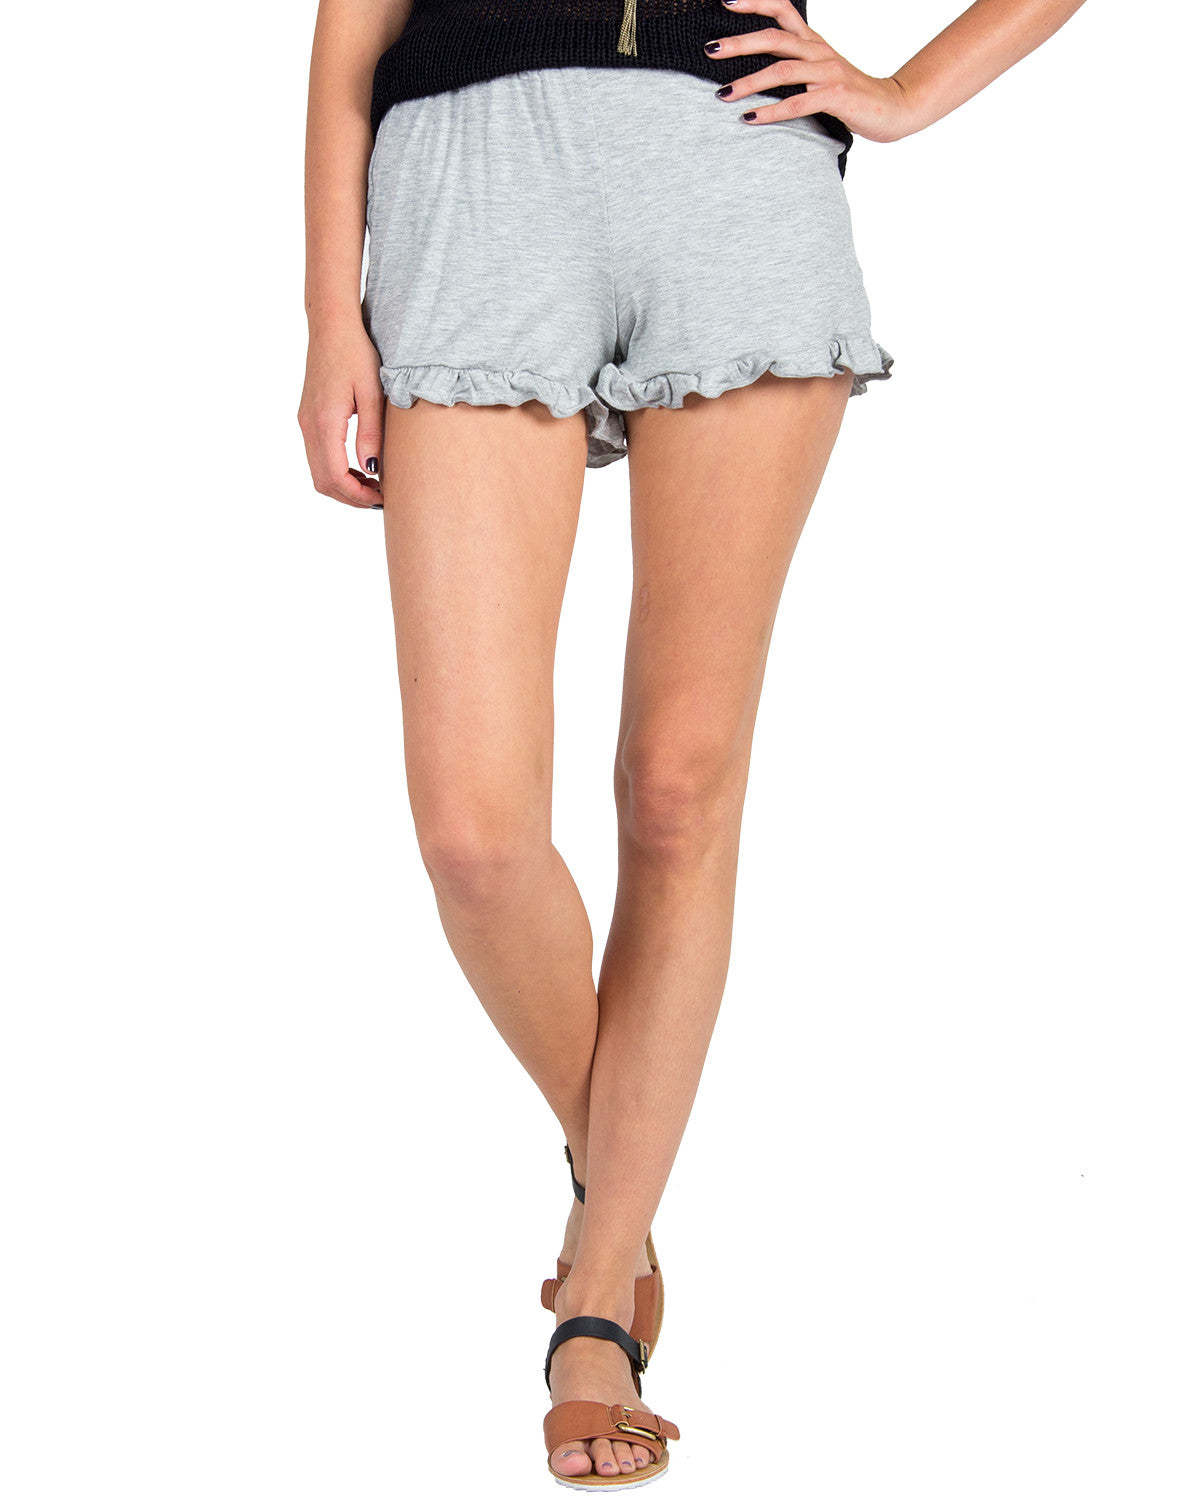 Solid Ruffle Bottom Lounge Shorts - Light Gray - 2020AVE